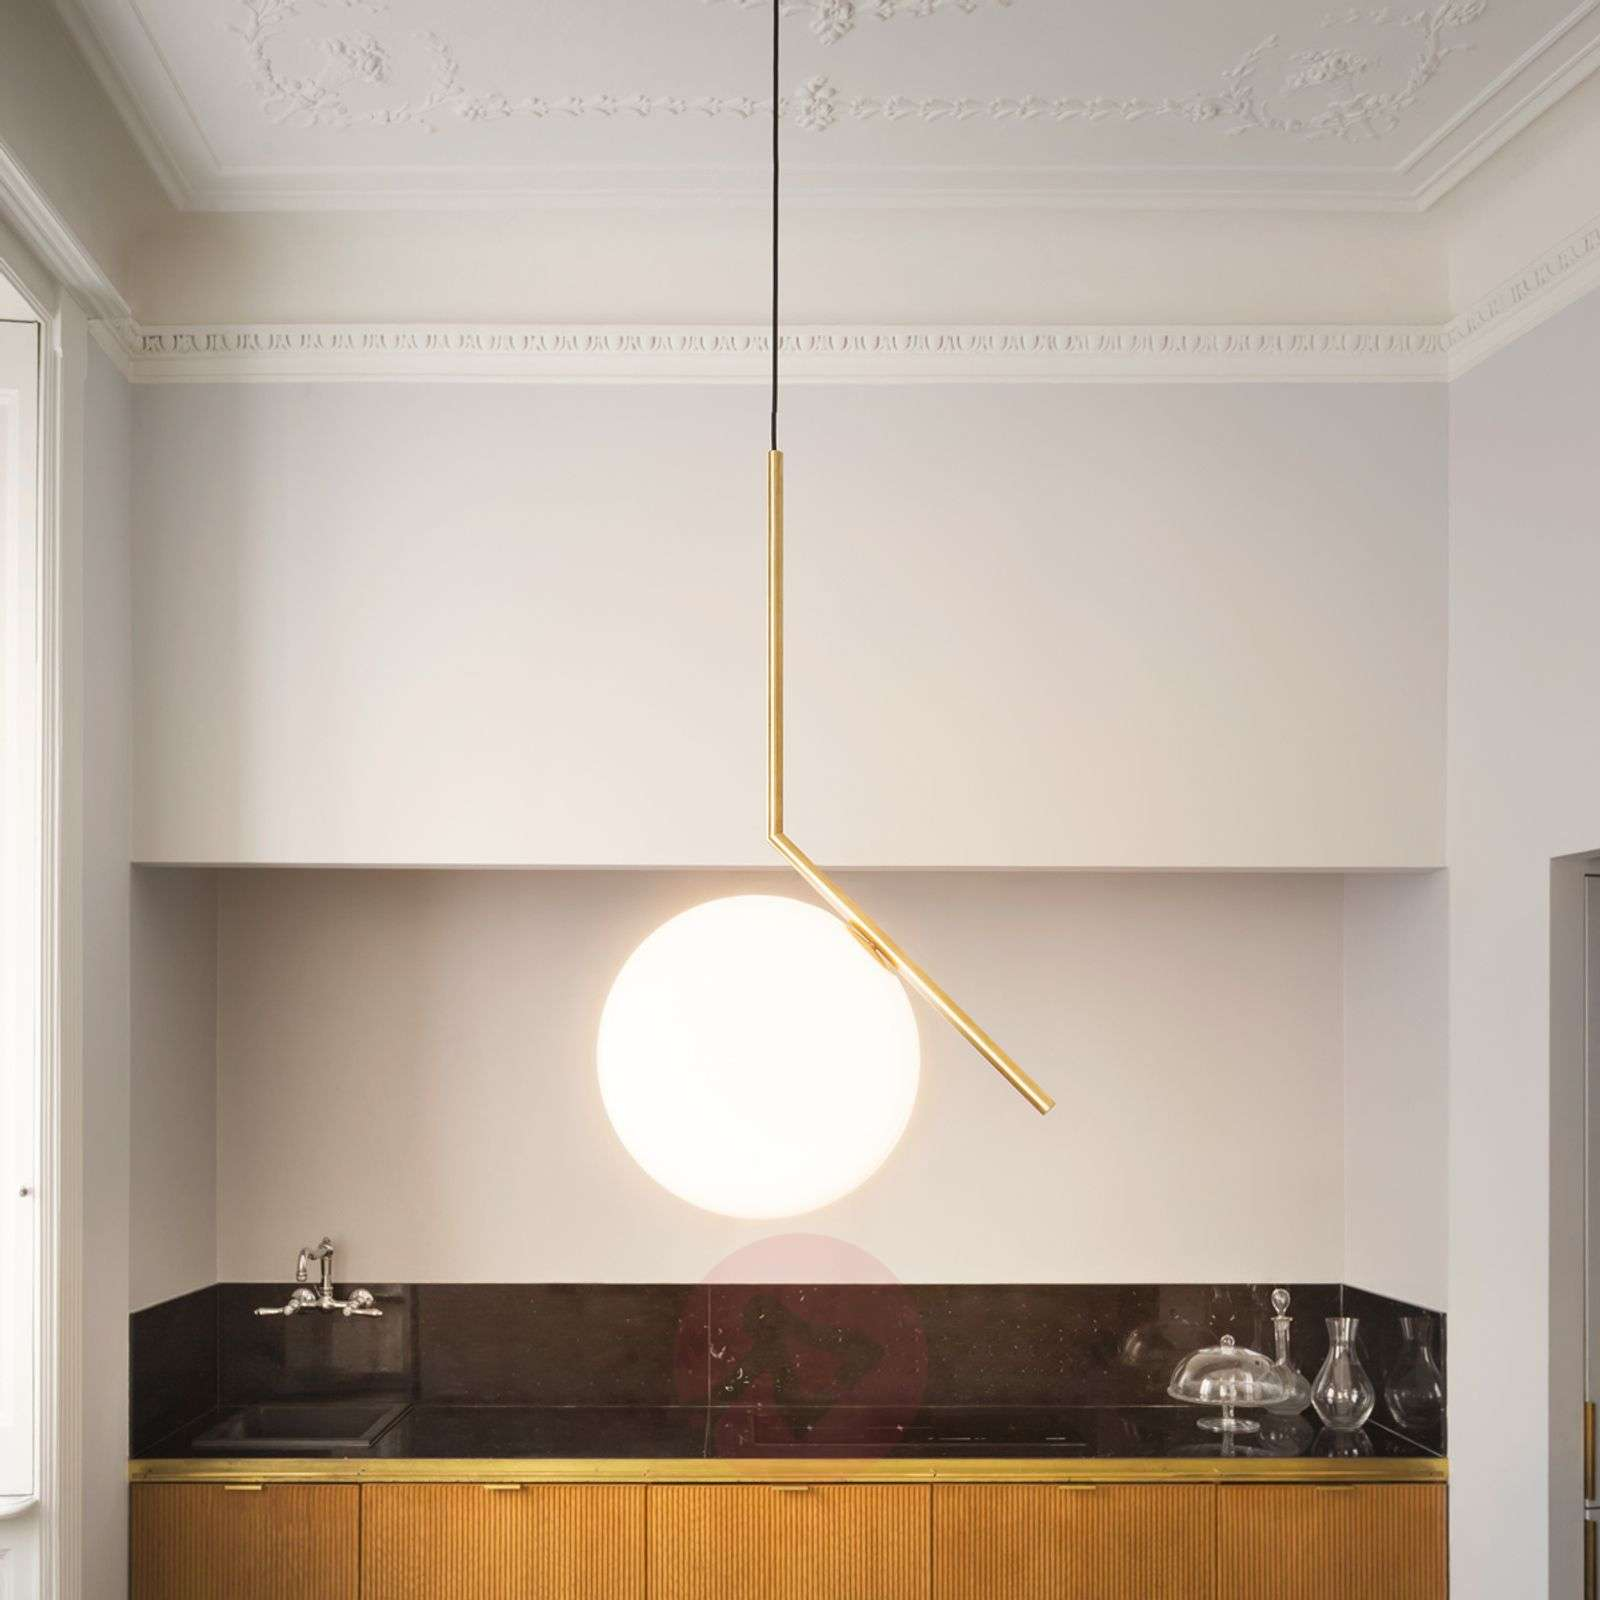 IC S2 Designer Pendant Lamp by FLOS, Brass-3510300-08